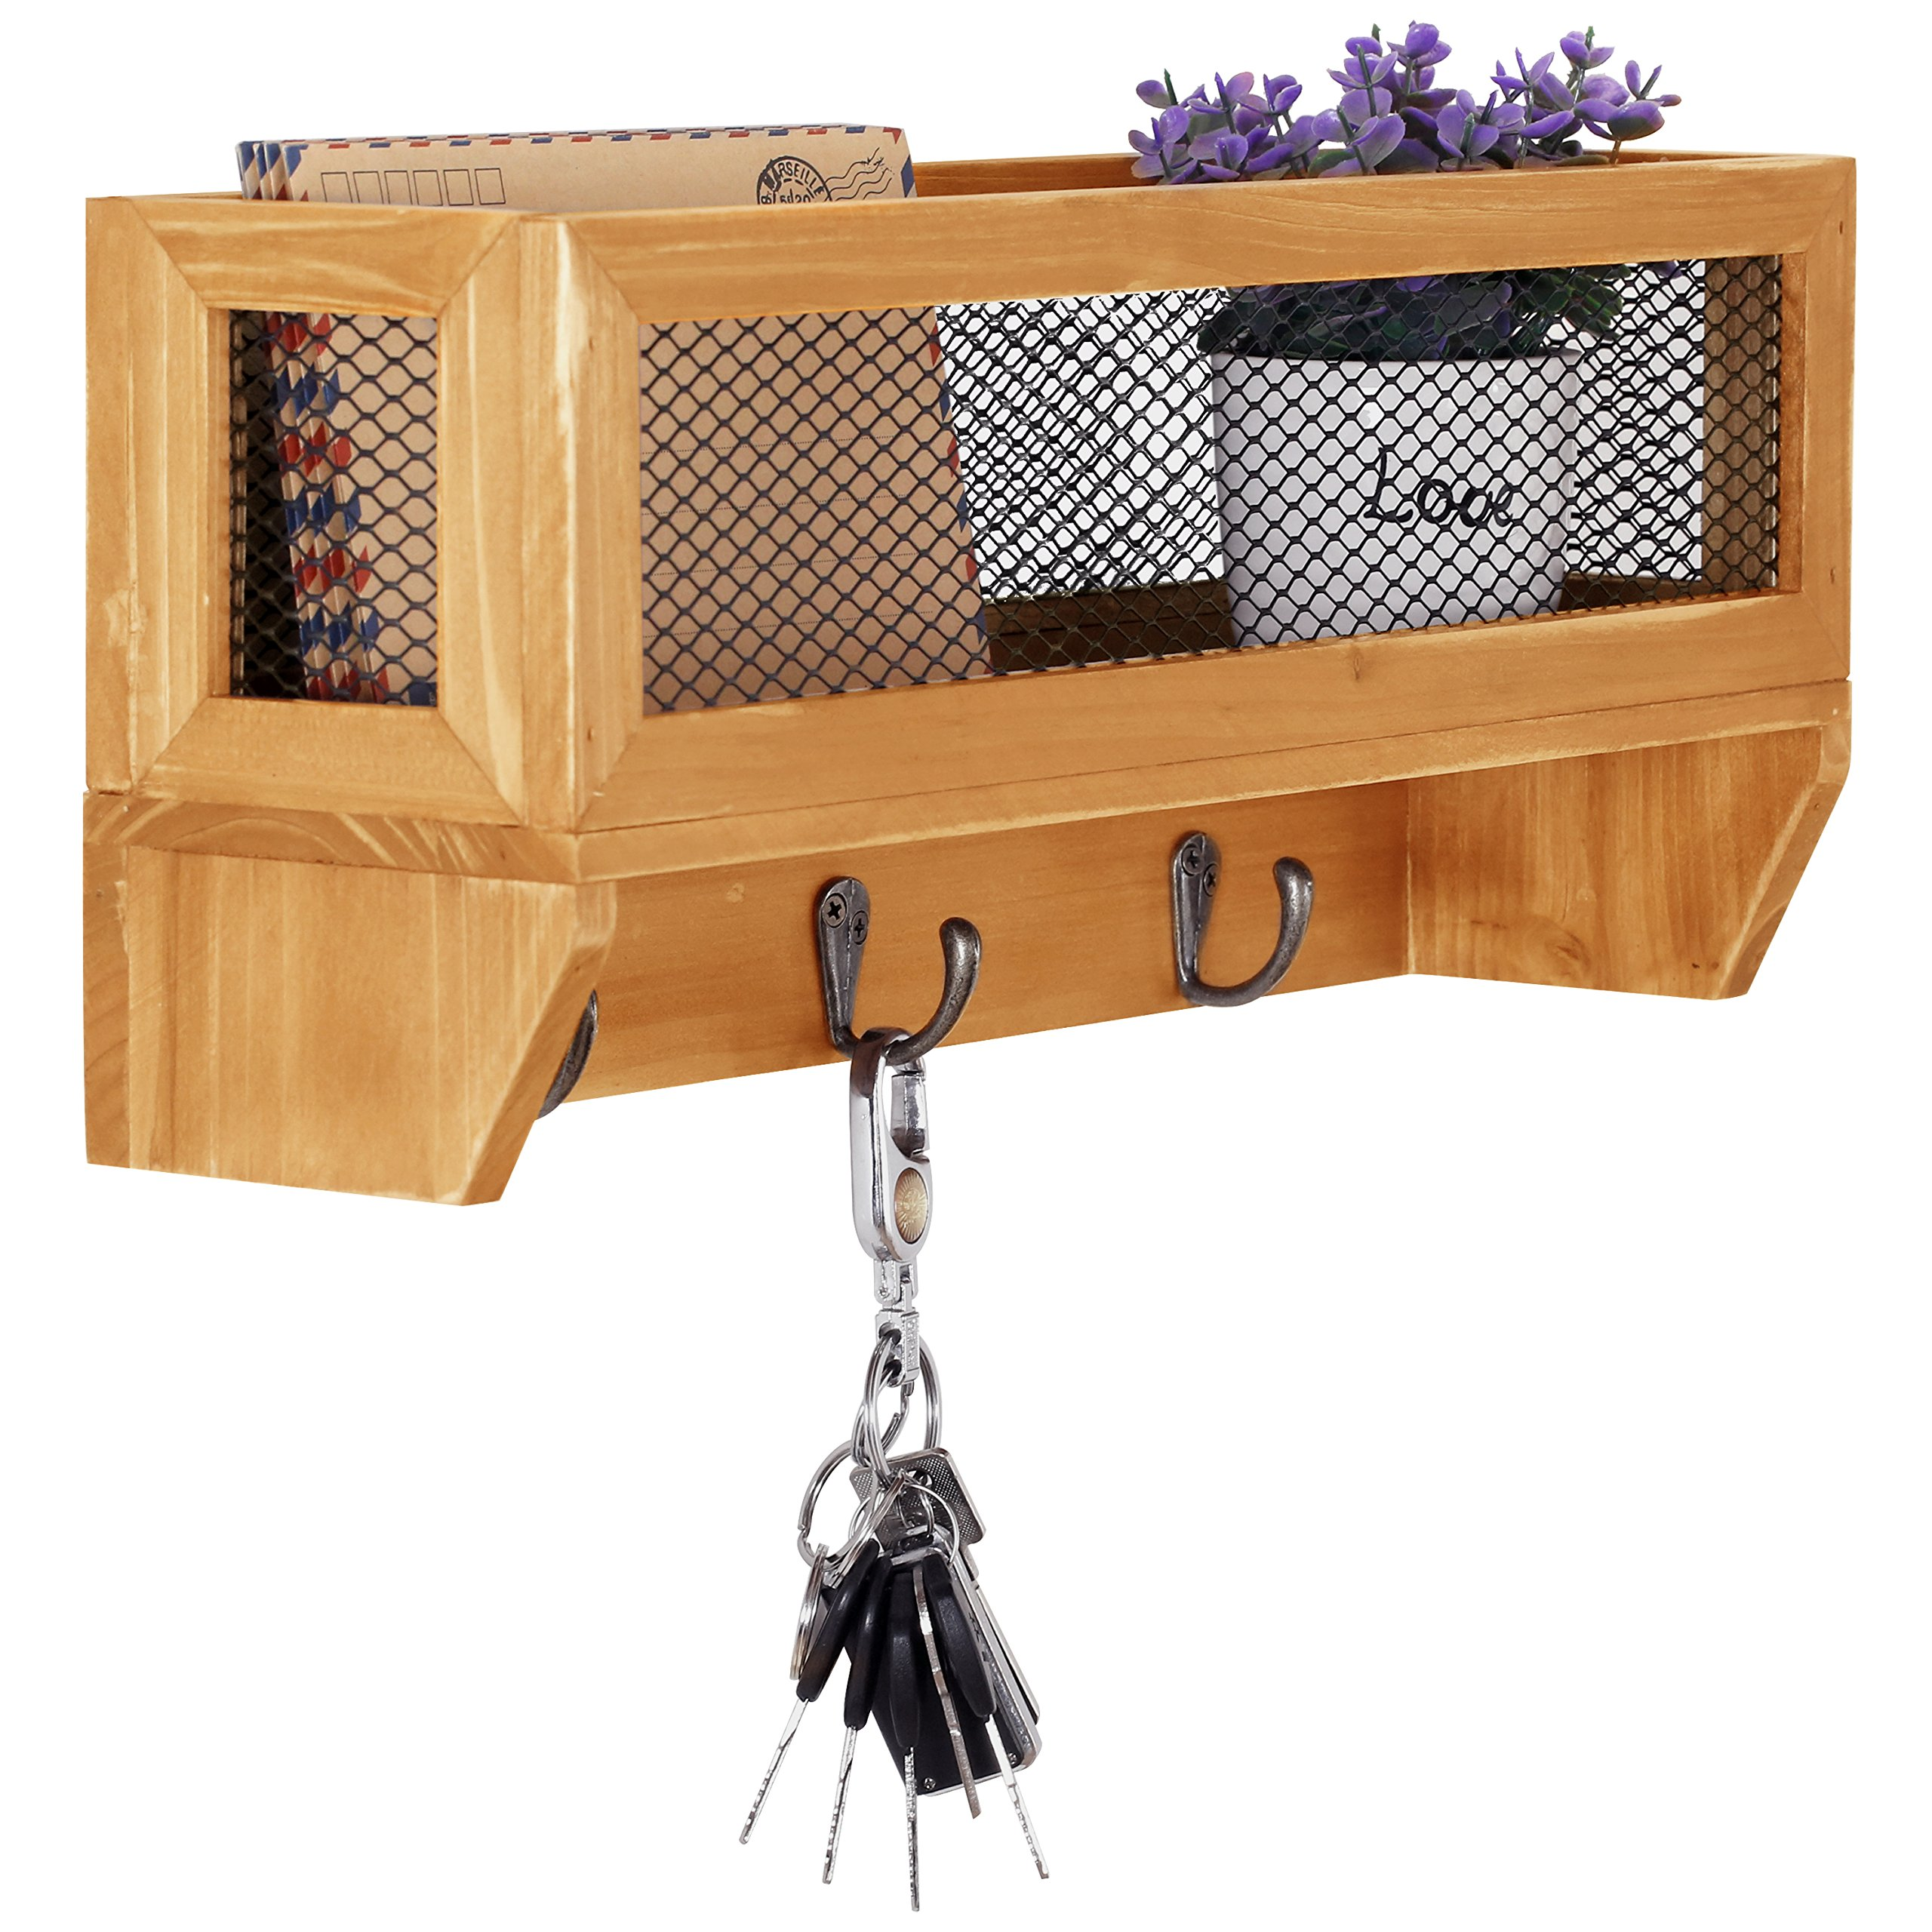 3-Hook Rustic Wooden Wall Mounted Entryway Organizer Rack with Metal Mesh Storage Basket by MyGift (Image #1)